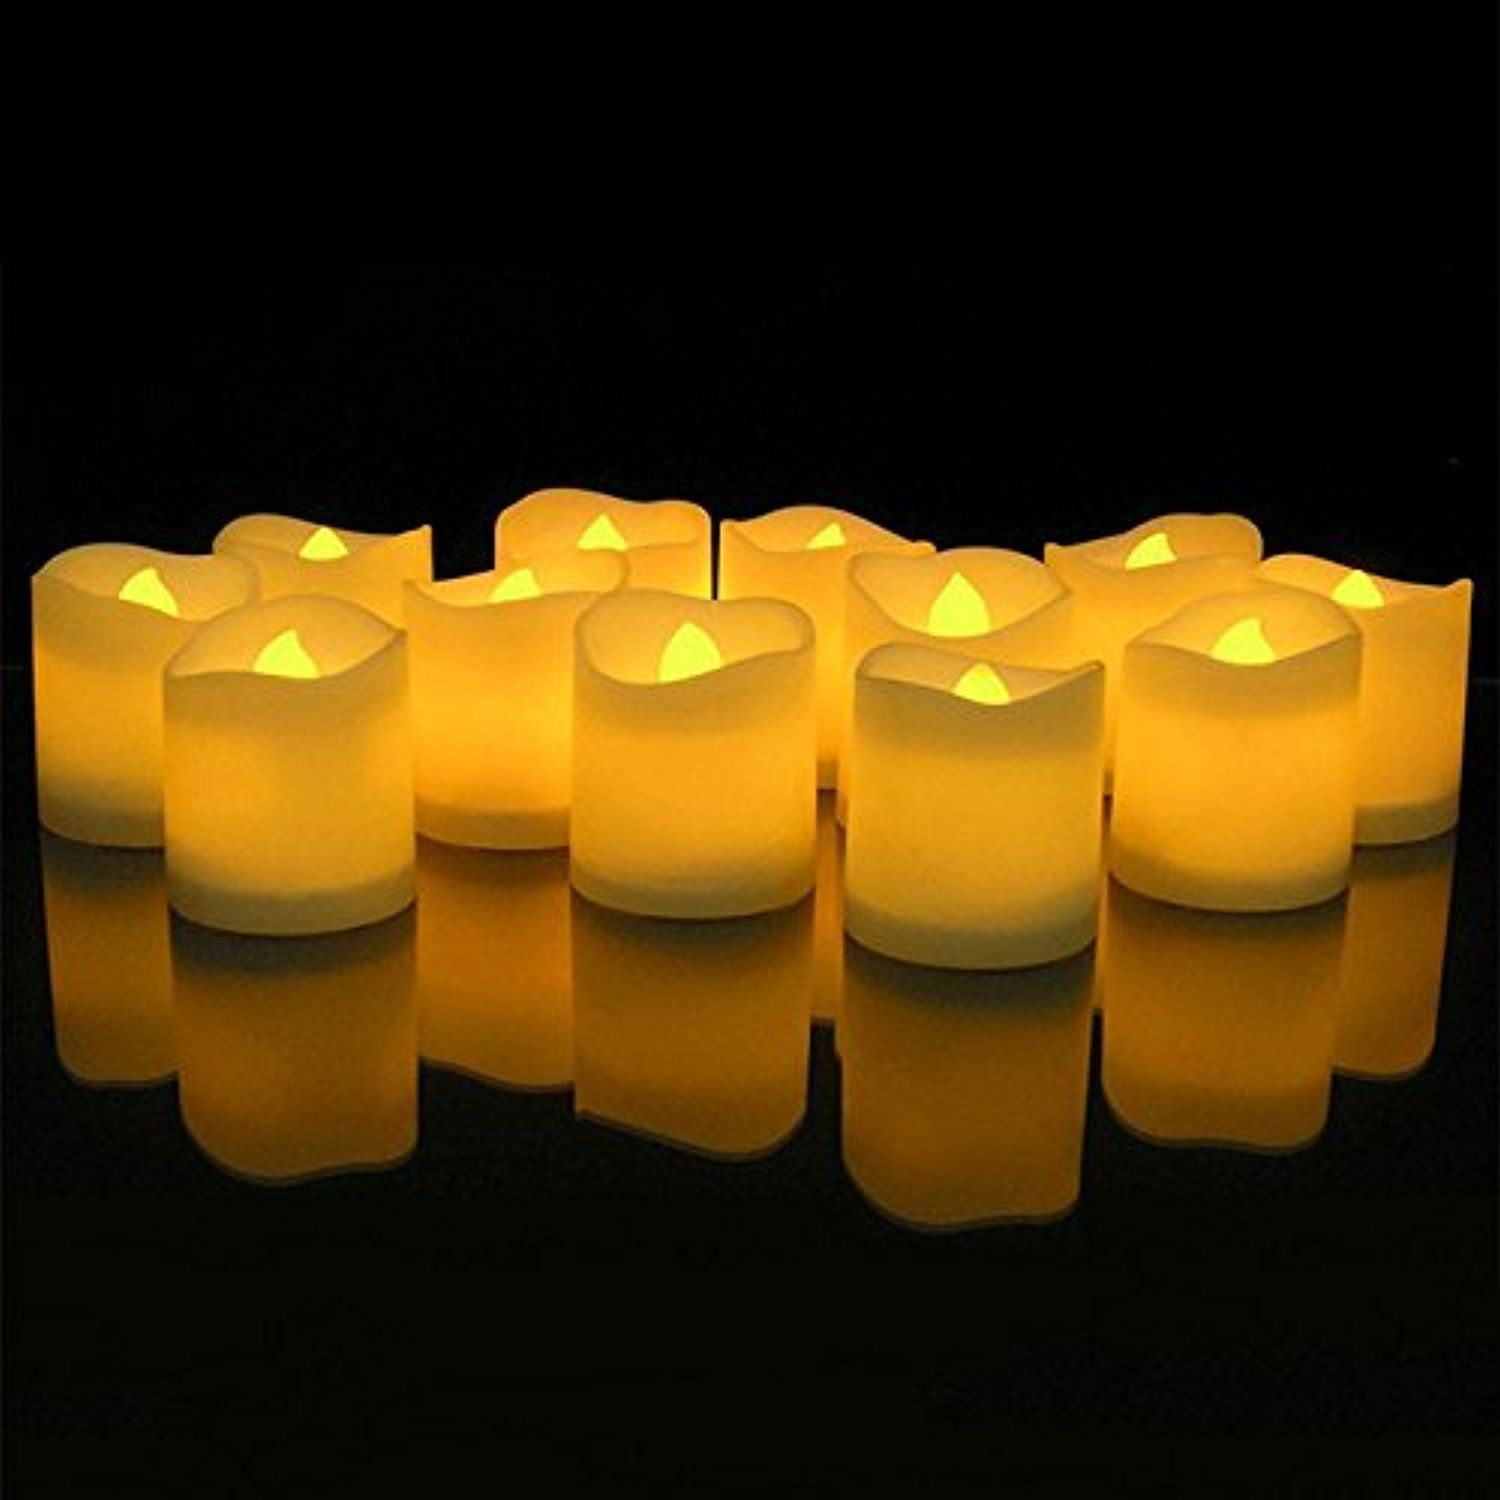 Led Electronic Candle Lampasdomo Flameless Tea Light Candles For Wedding Birthday Home Party Christmas Halloween Decoration 24pcs Check Out